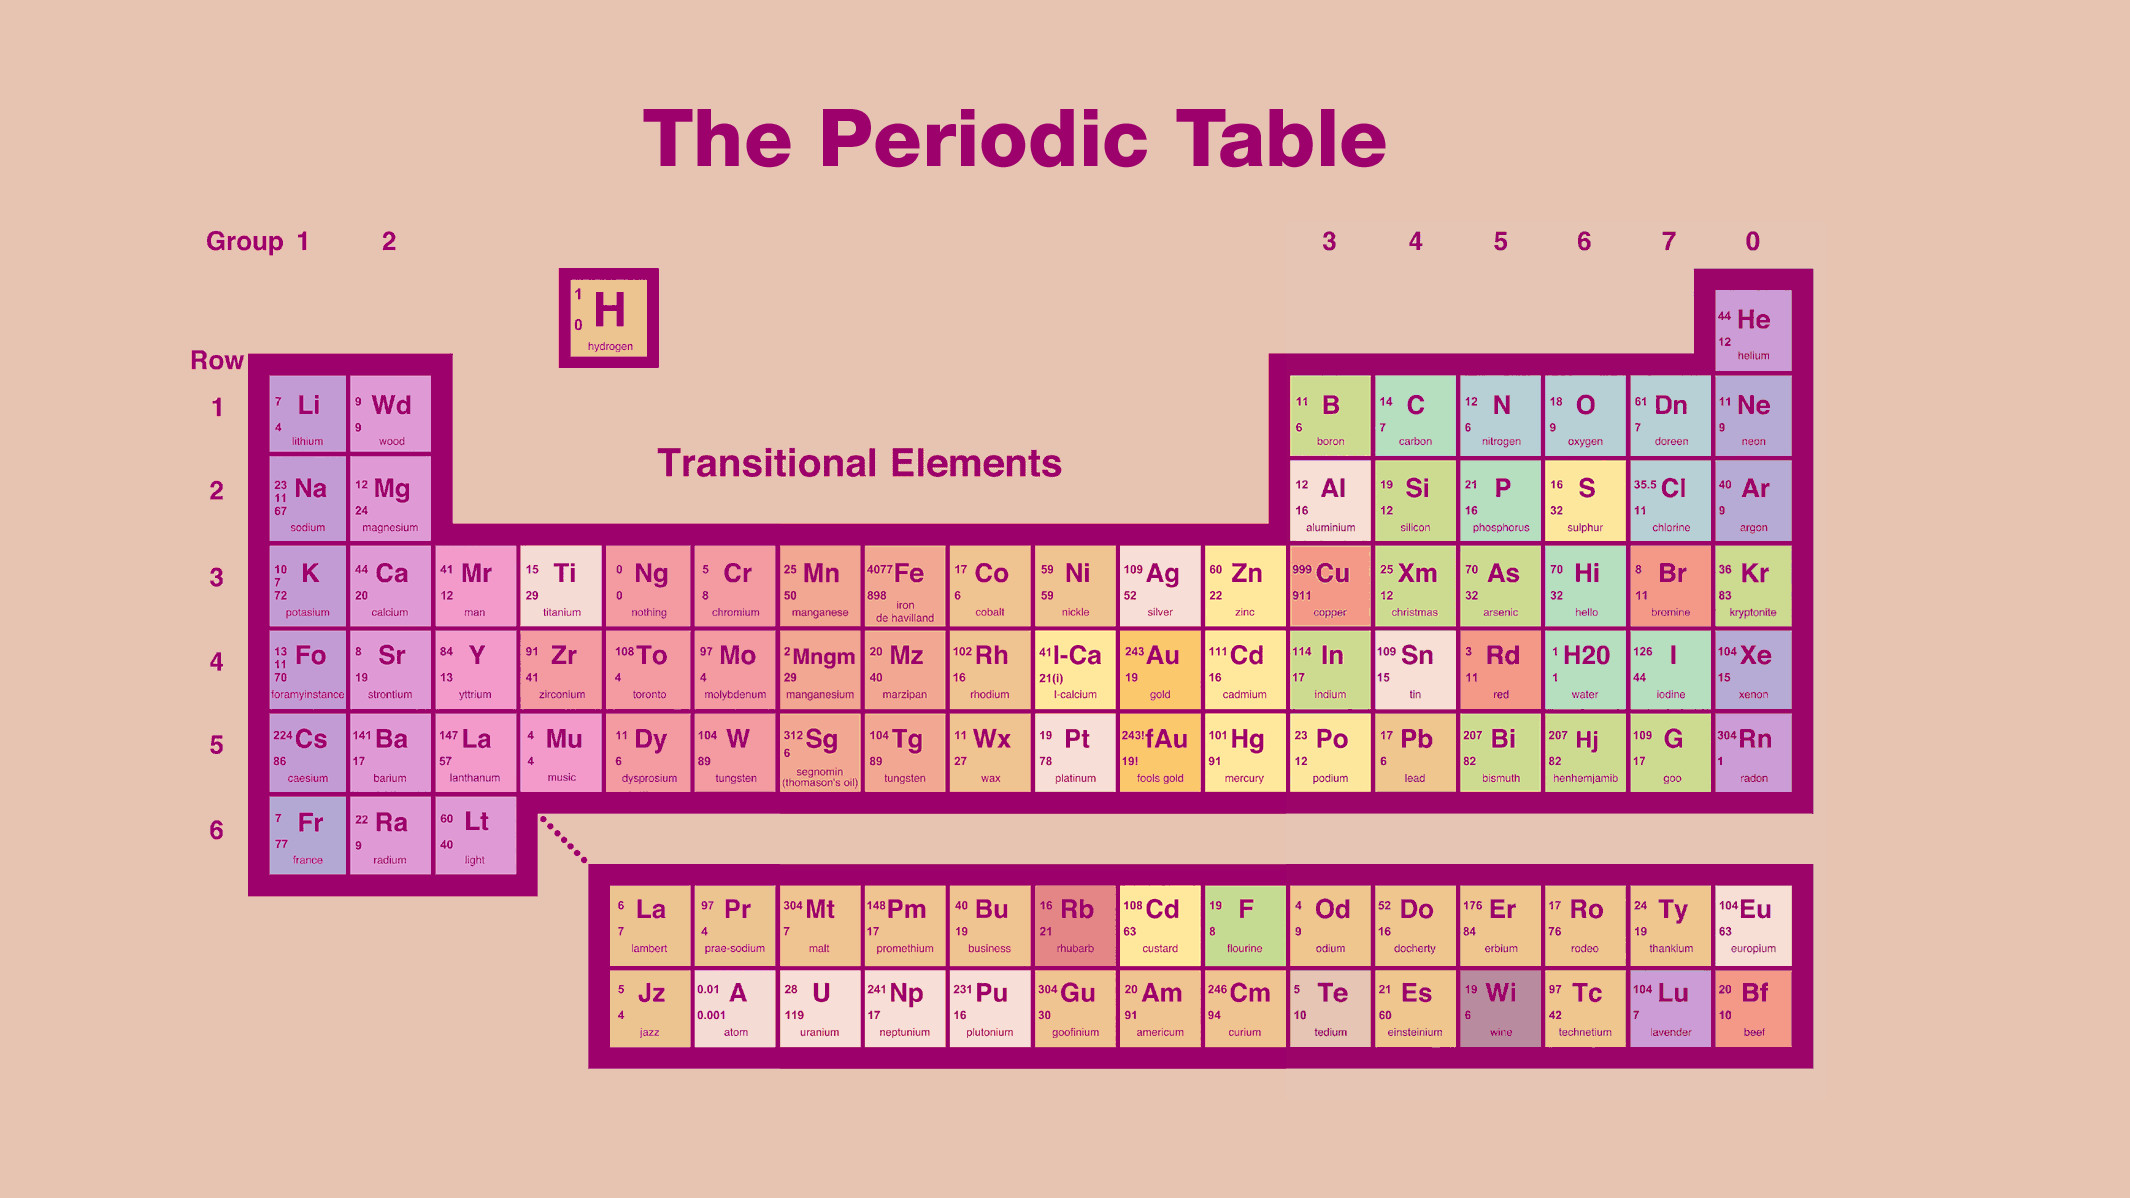 Periodic table chemistry definition choice image periodic table periodic table chemistry definition images periodic table images periodic table pe image collections periodic table images gamestrikefo Choice Image